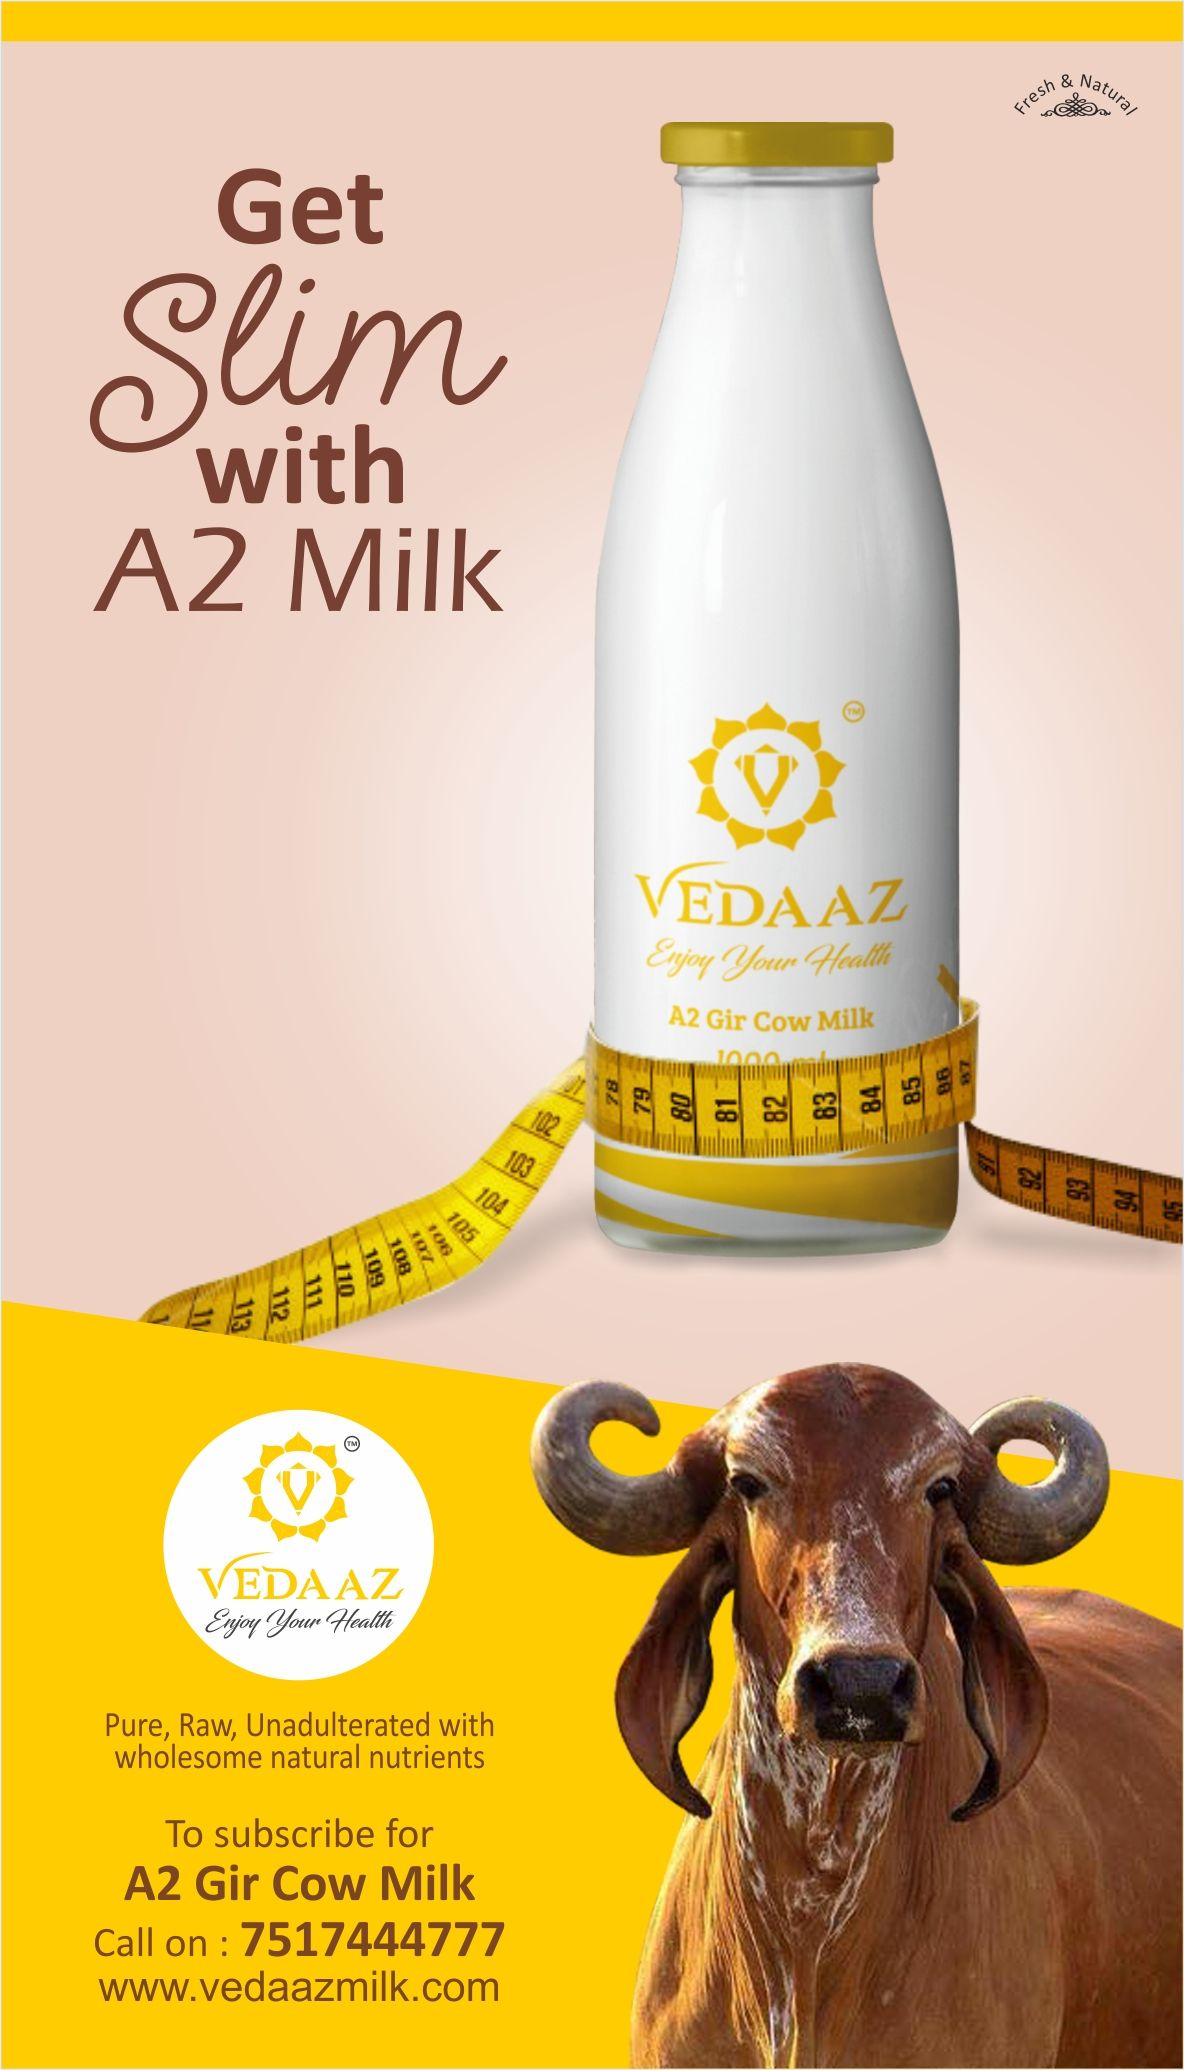 A2 Milk Can Help You Reduce Your Waistline Naturally So Make A2